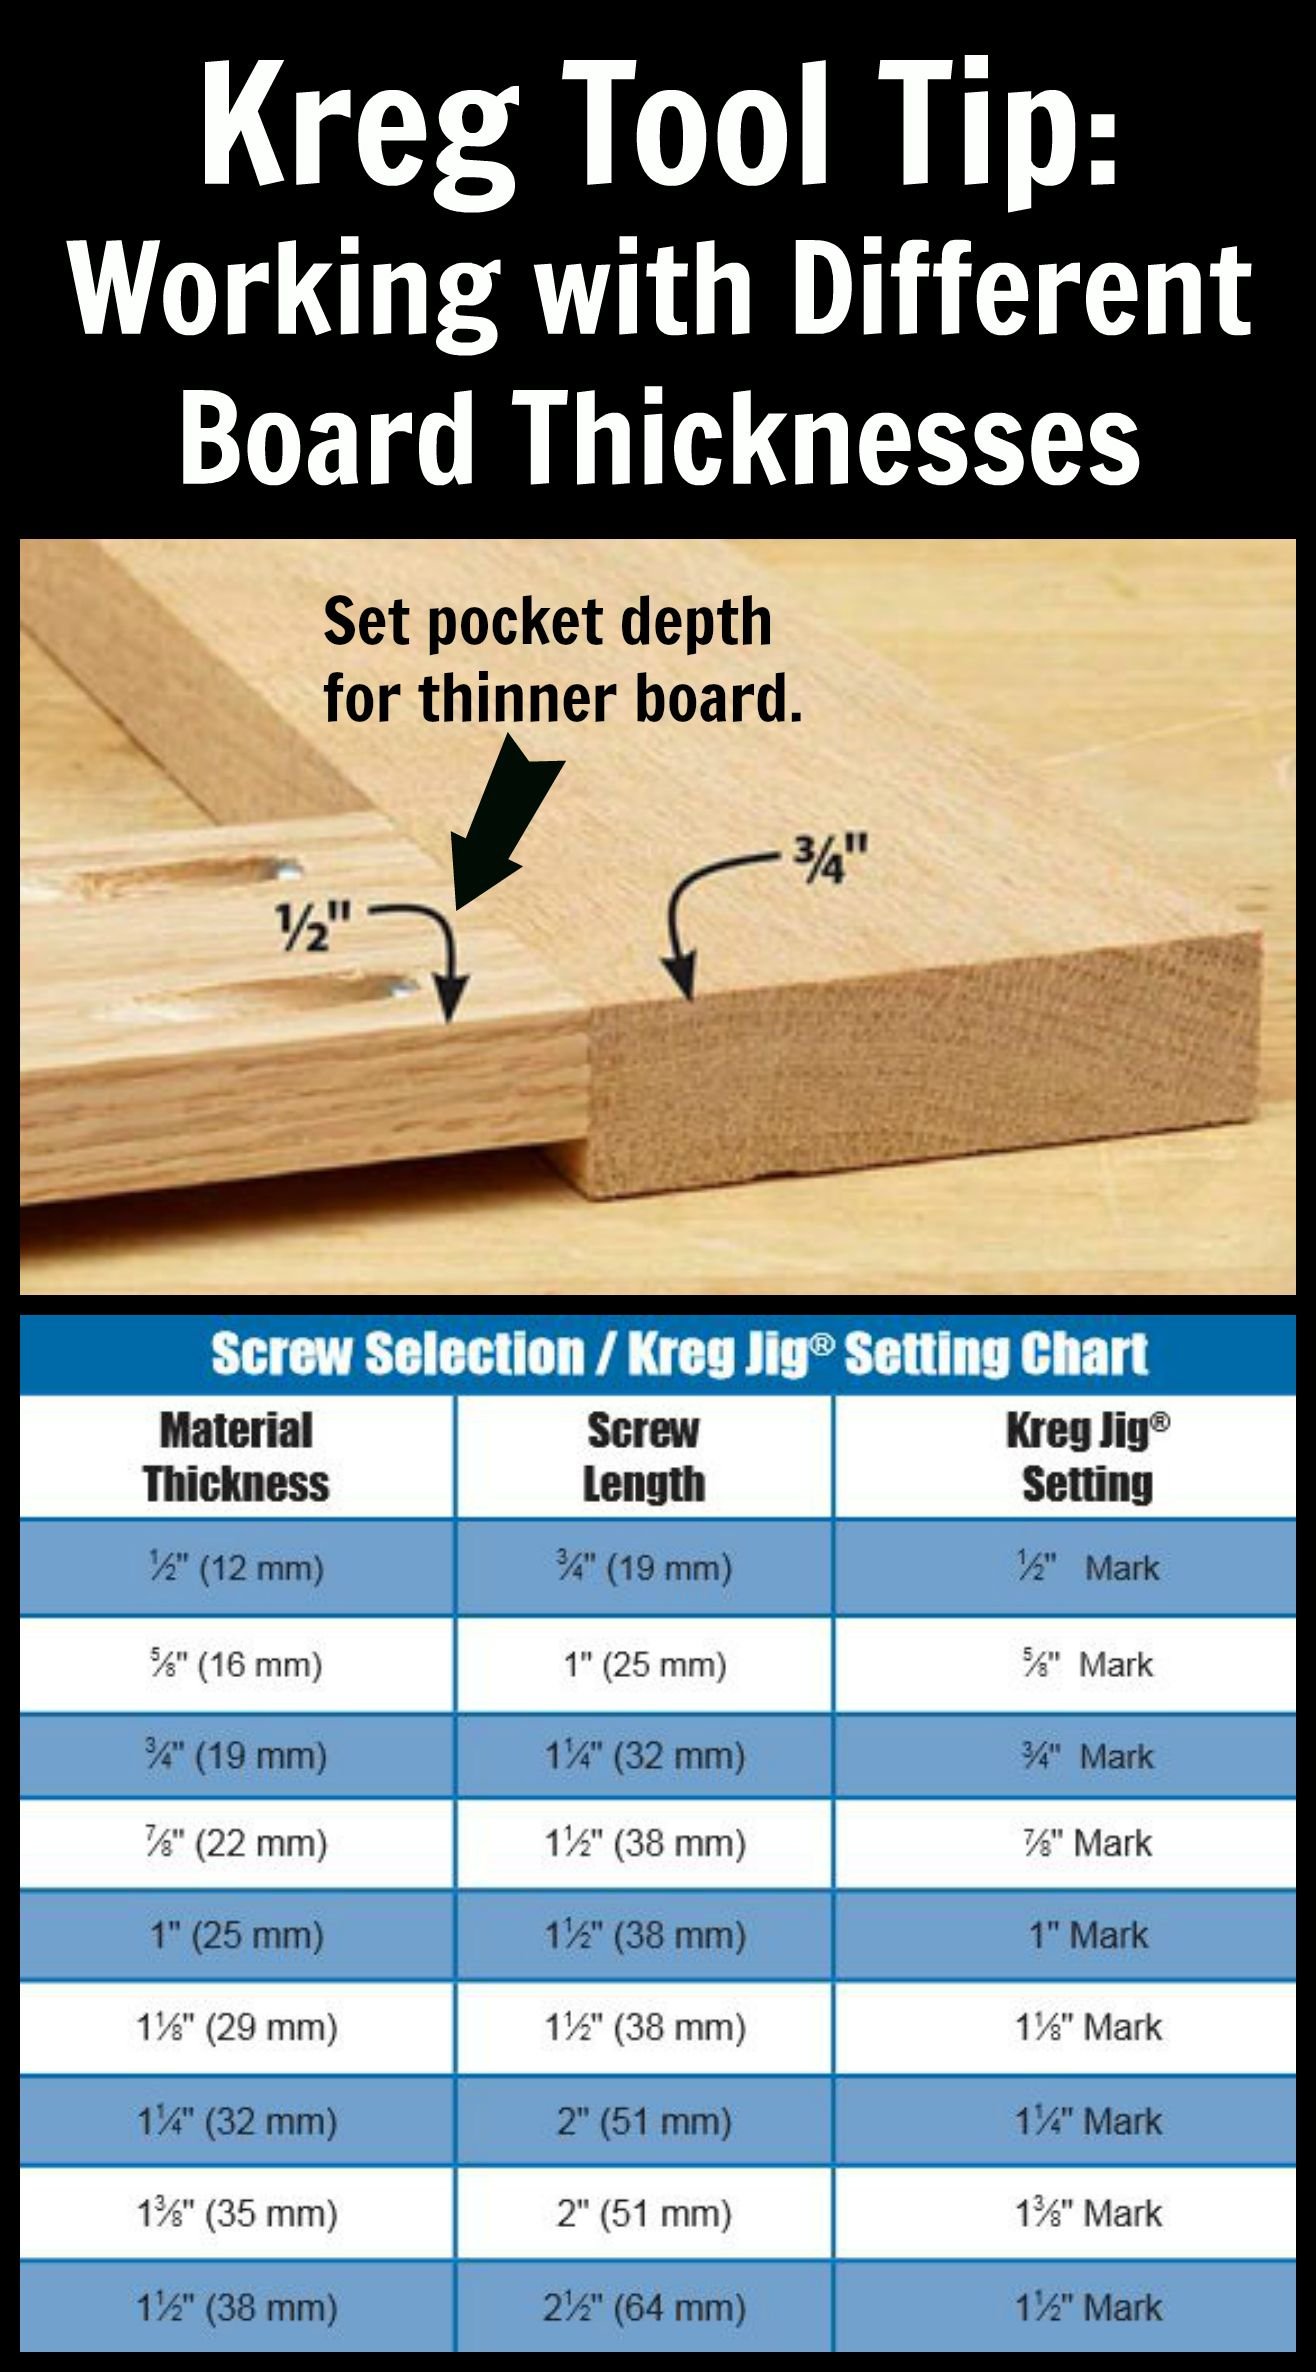 Kreg Tool Tip Working With Different Board Thicknesses When Joining Boards Of Two Different Thicknesses Edge To Edge Or Kreg Jig Woodworking Tips Kreg Tools